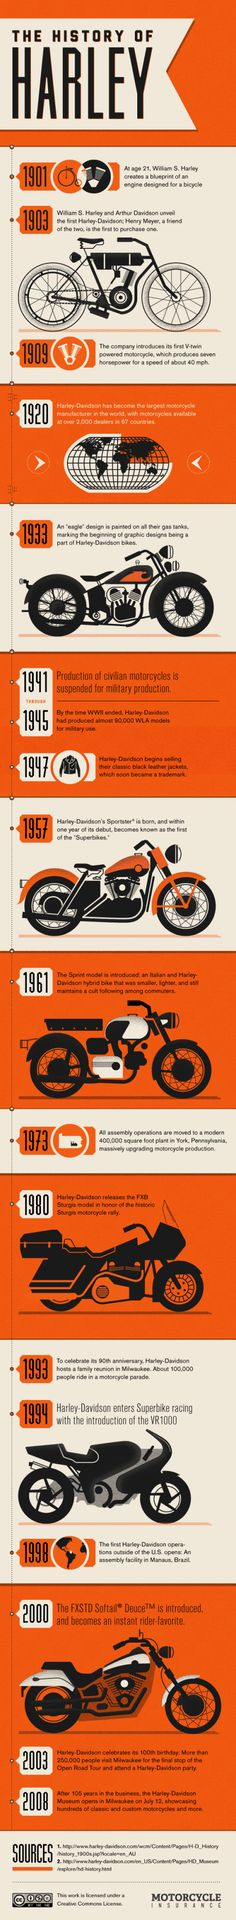 The History of Harley Davidson info graphic. Add Harley dies because it's a brand for old men. Harley Davison, Web Design, Graphic Design, Bike Design, Vintage Motorcycles, Harley Davidson Motorcycles, Davidson Bike, Cars Motorcycles, Harley Davidson History